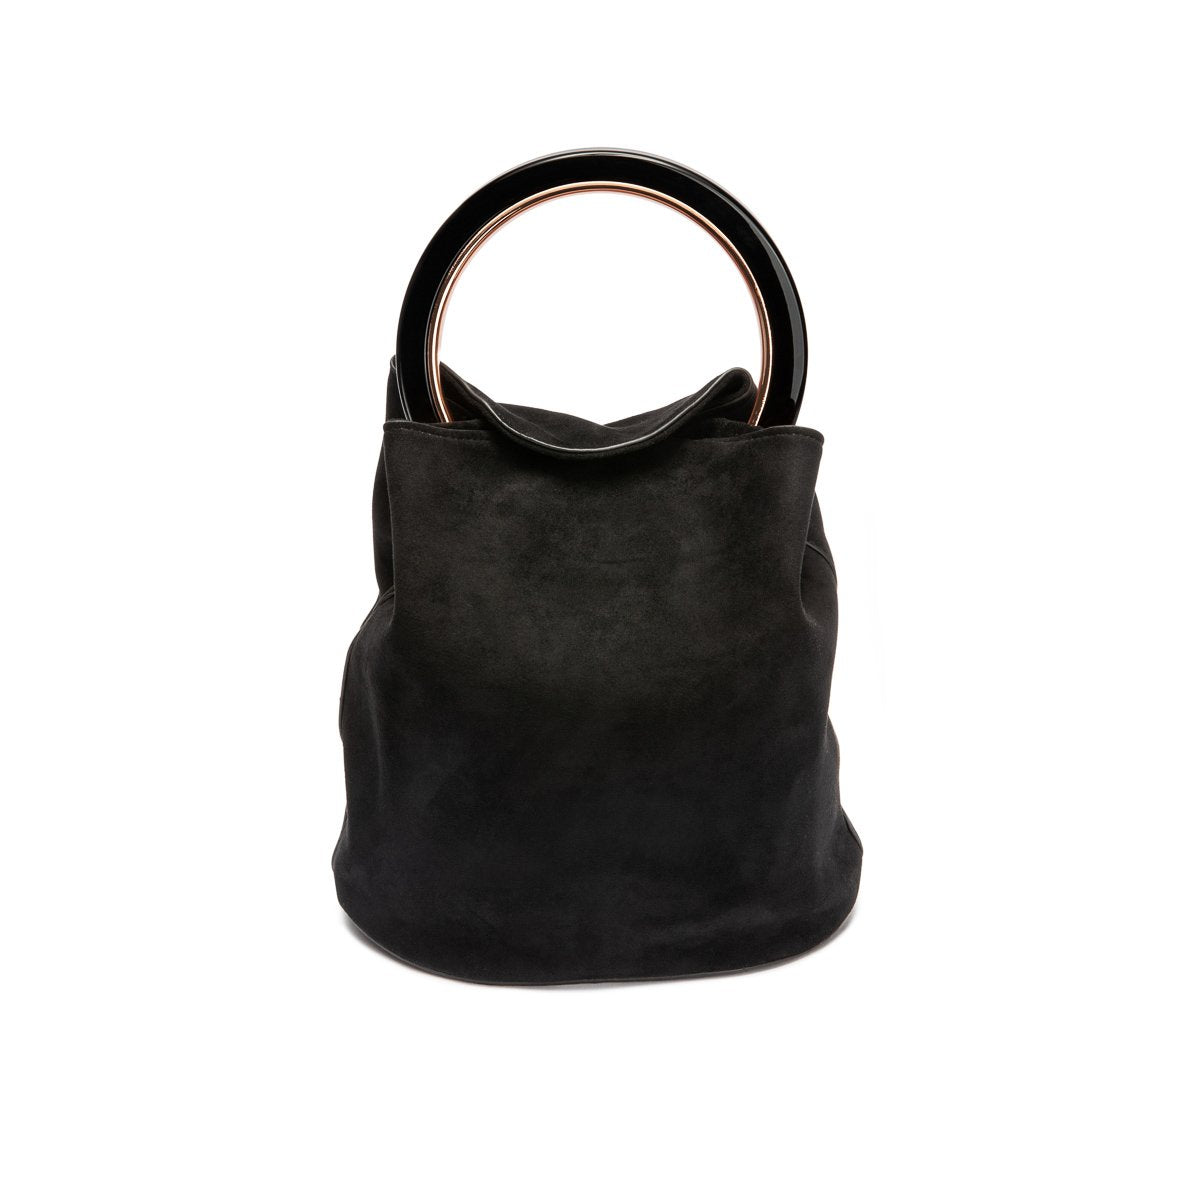 Sofia Handle Bag Jet Black (Black/Rose Gold)